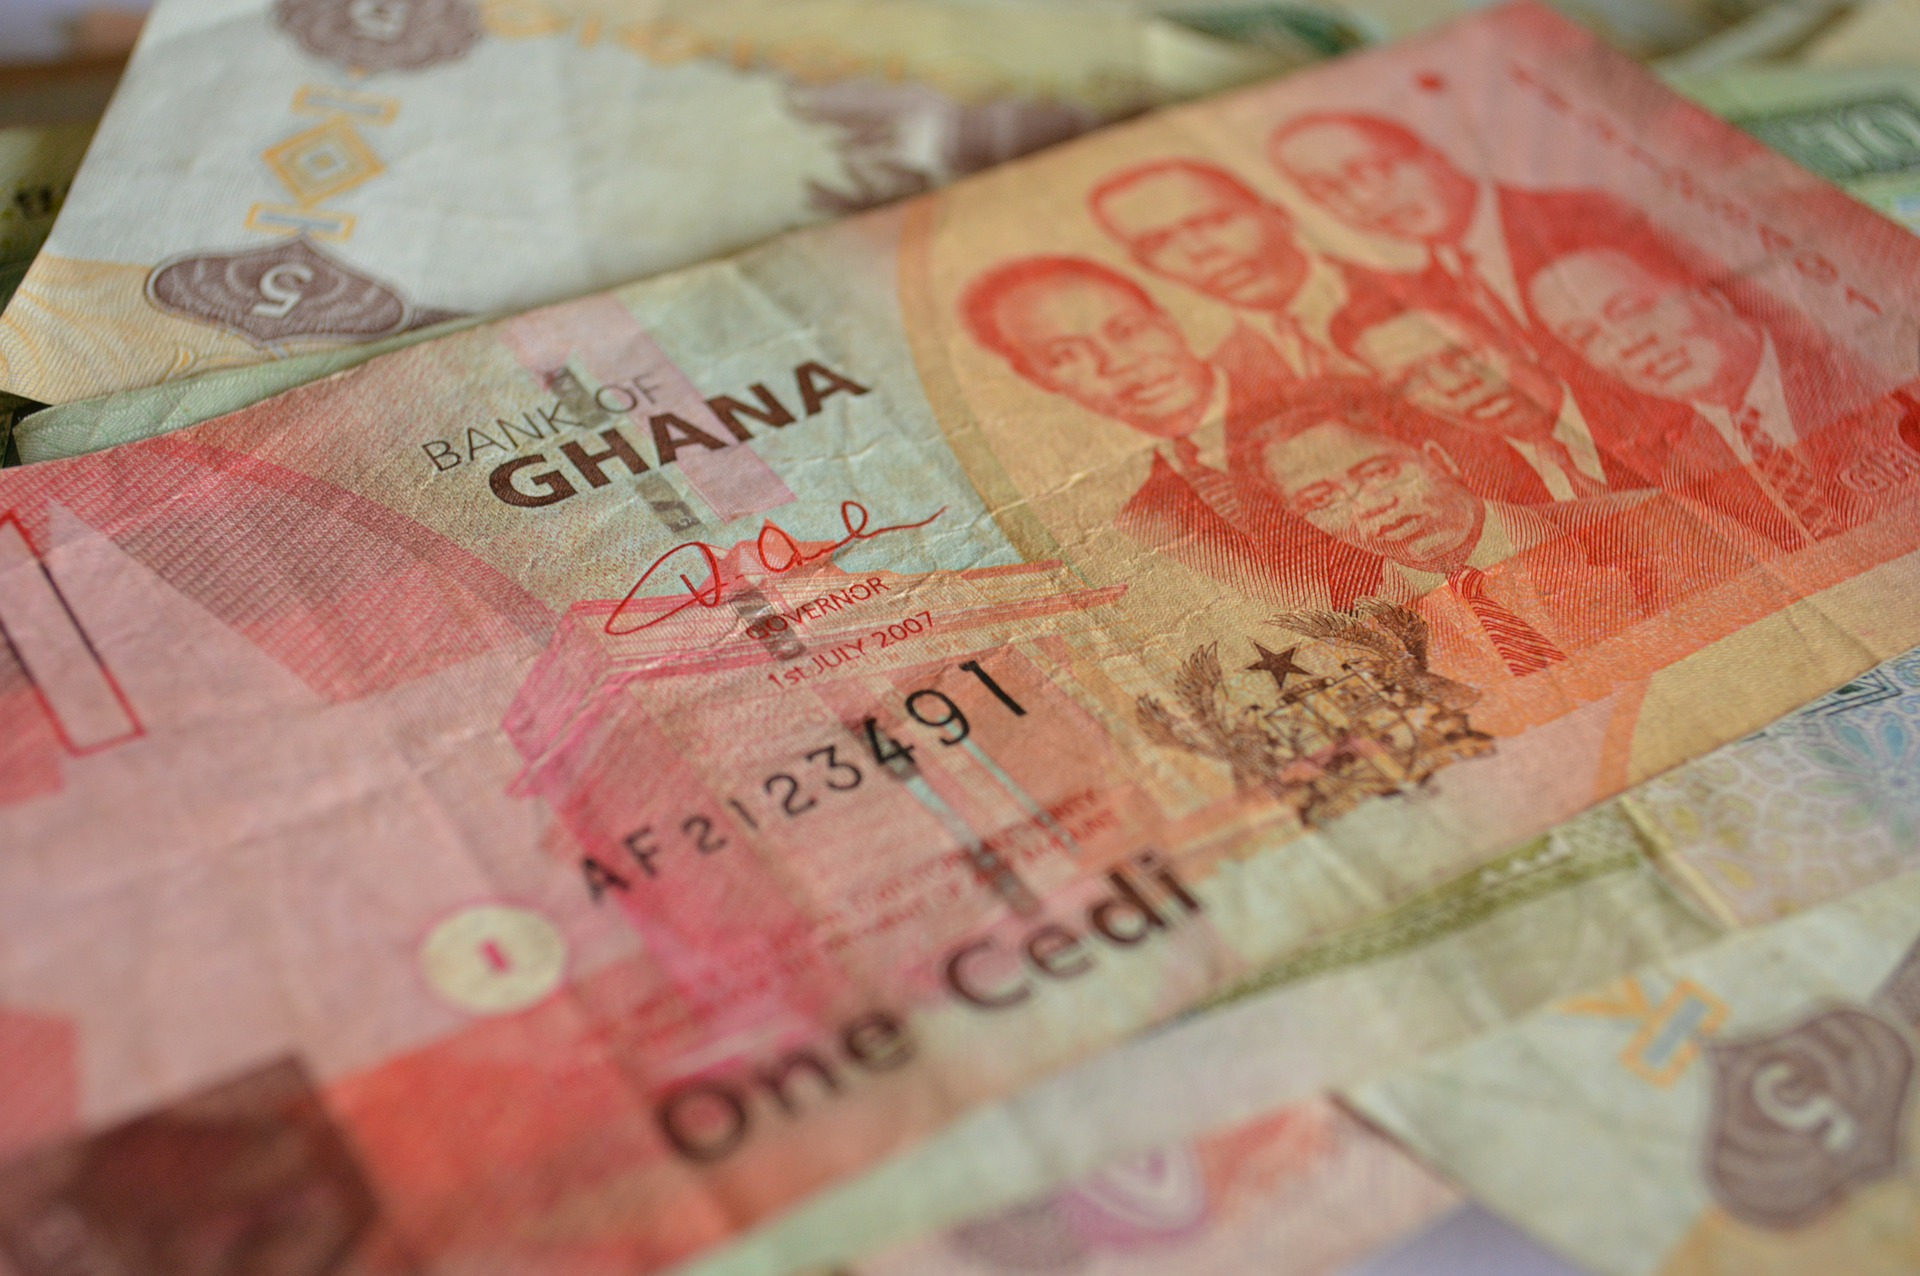 Ghanaian Cedis- the country's unit of currency